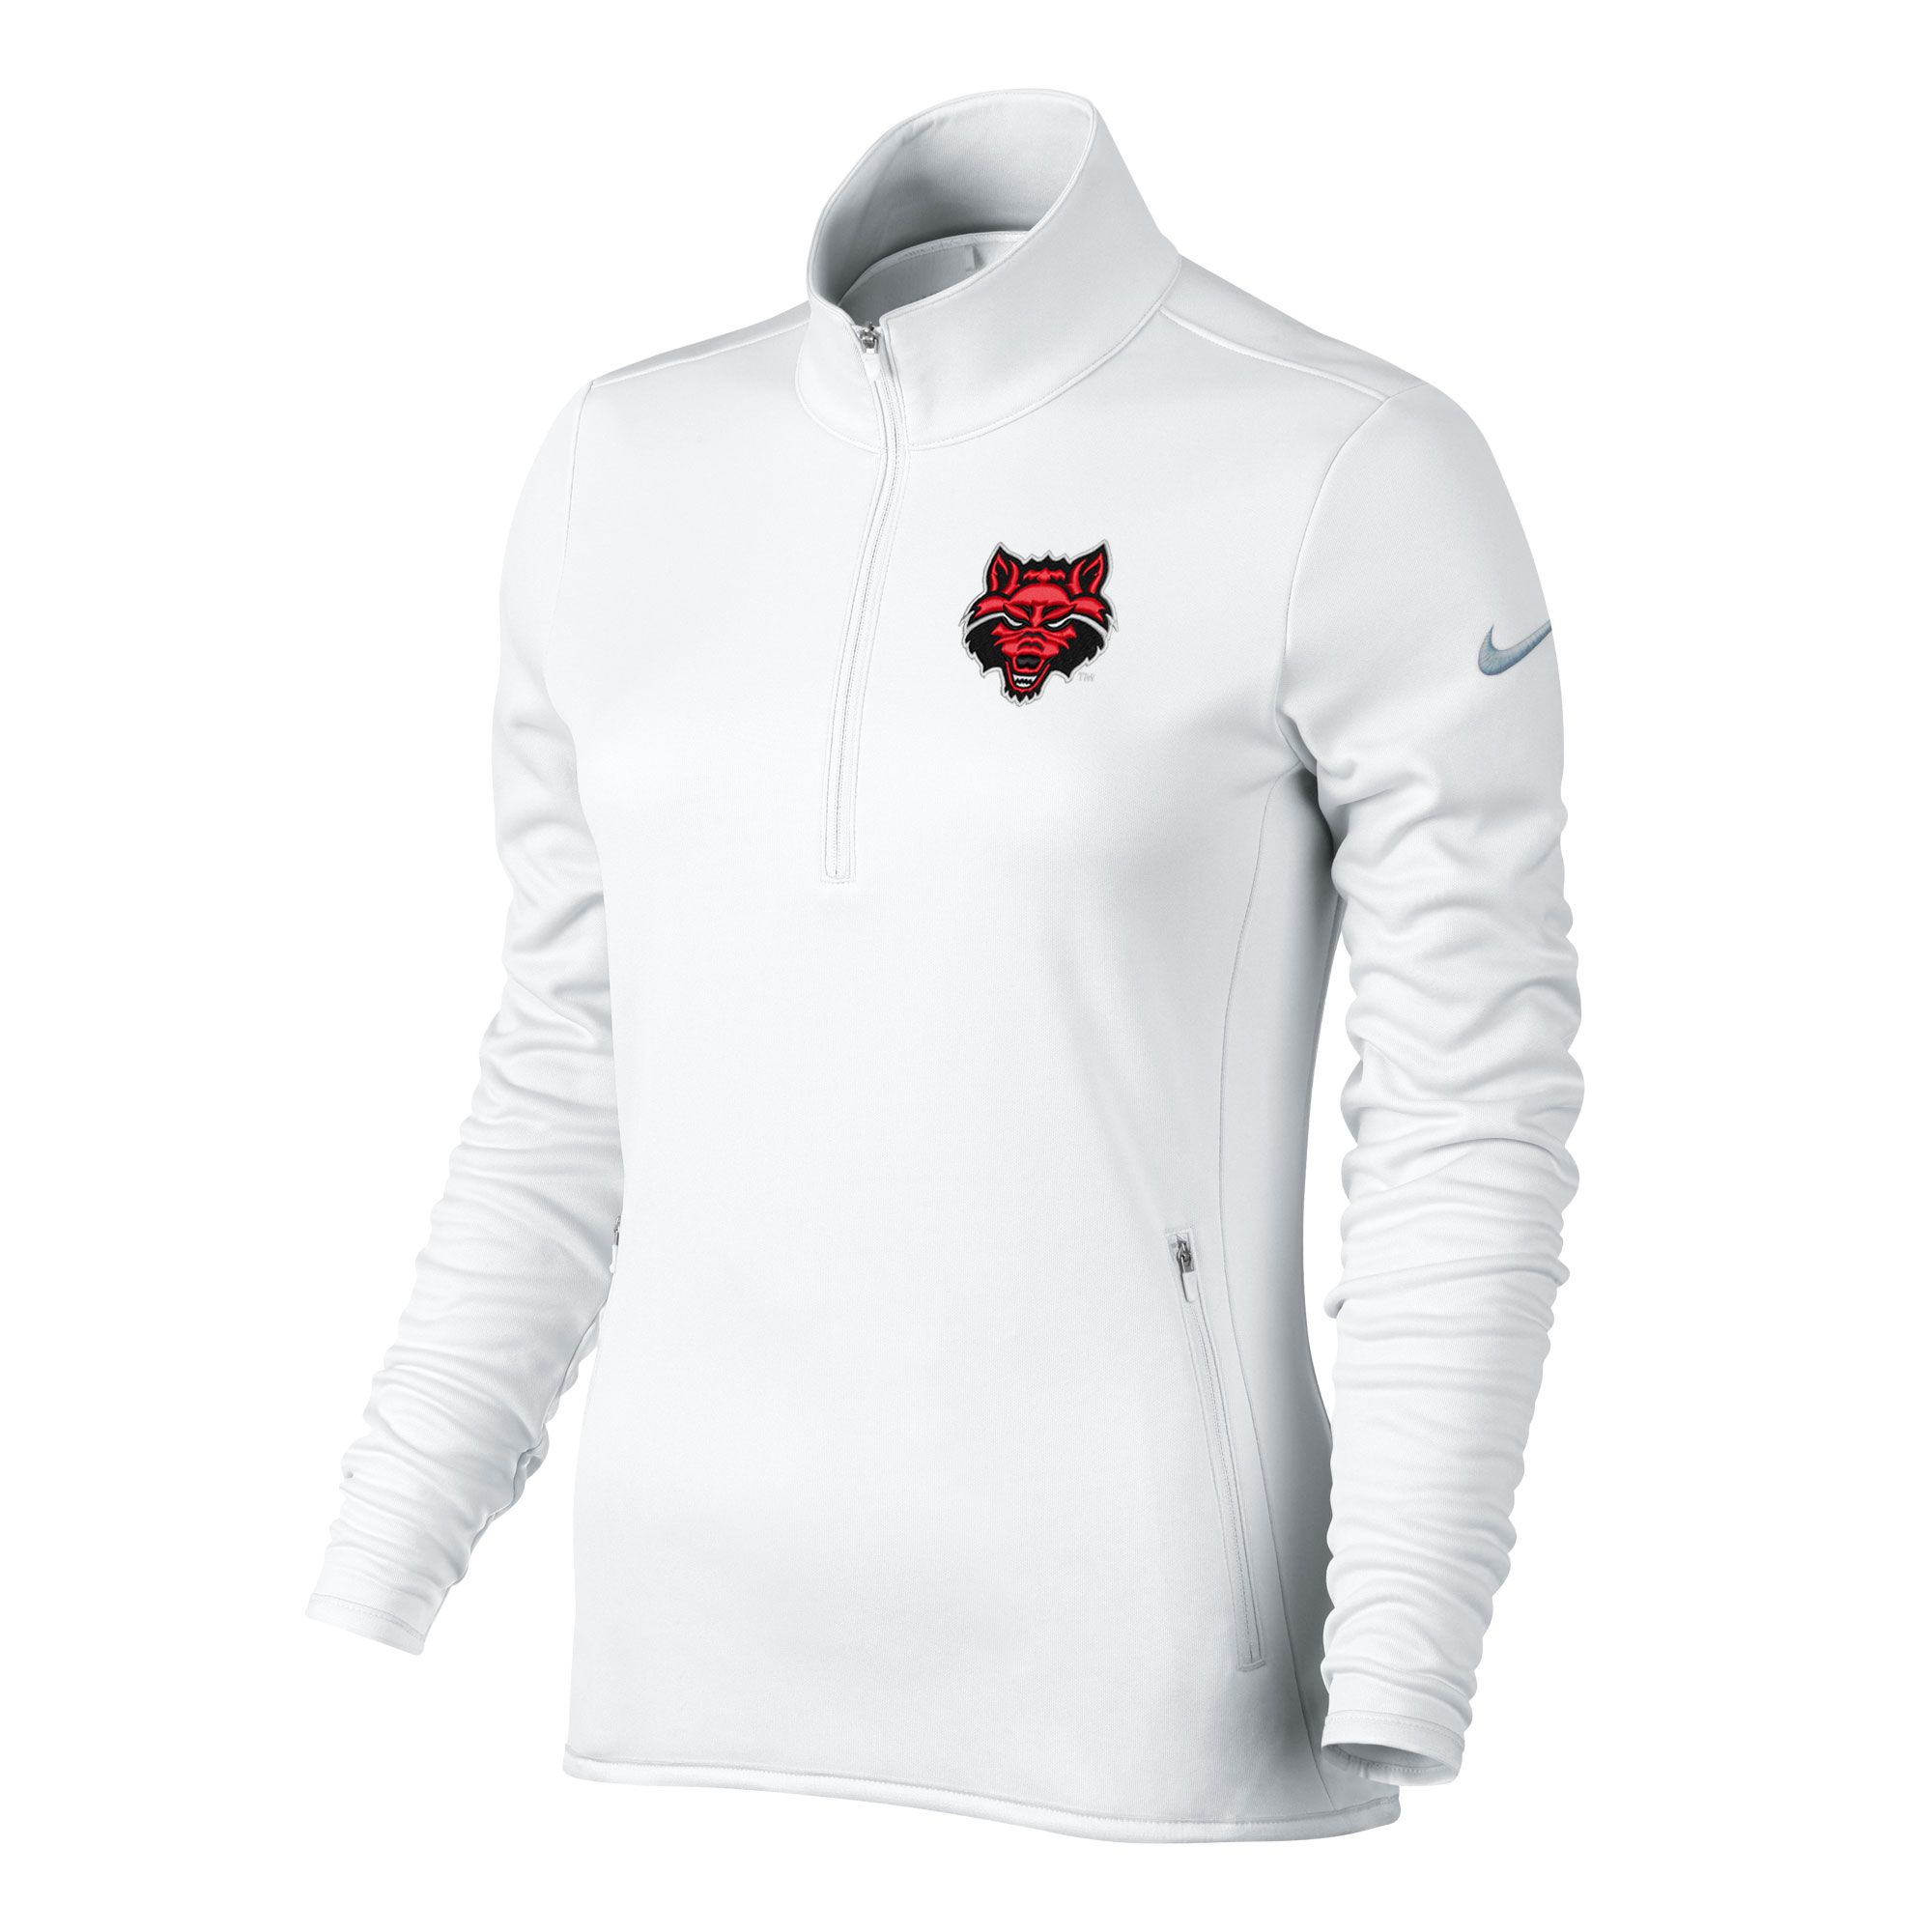 Arkansas State Women's Thermal 1/2 Zip Top